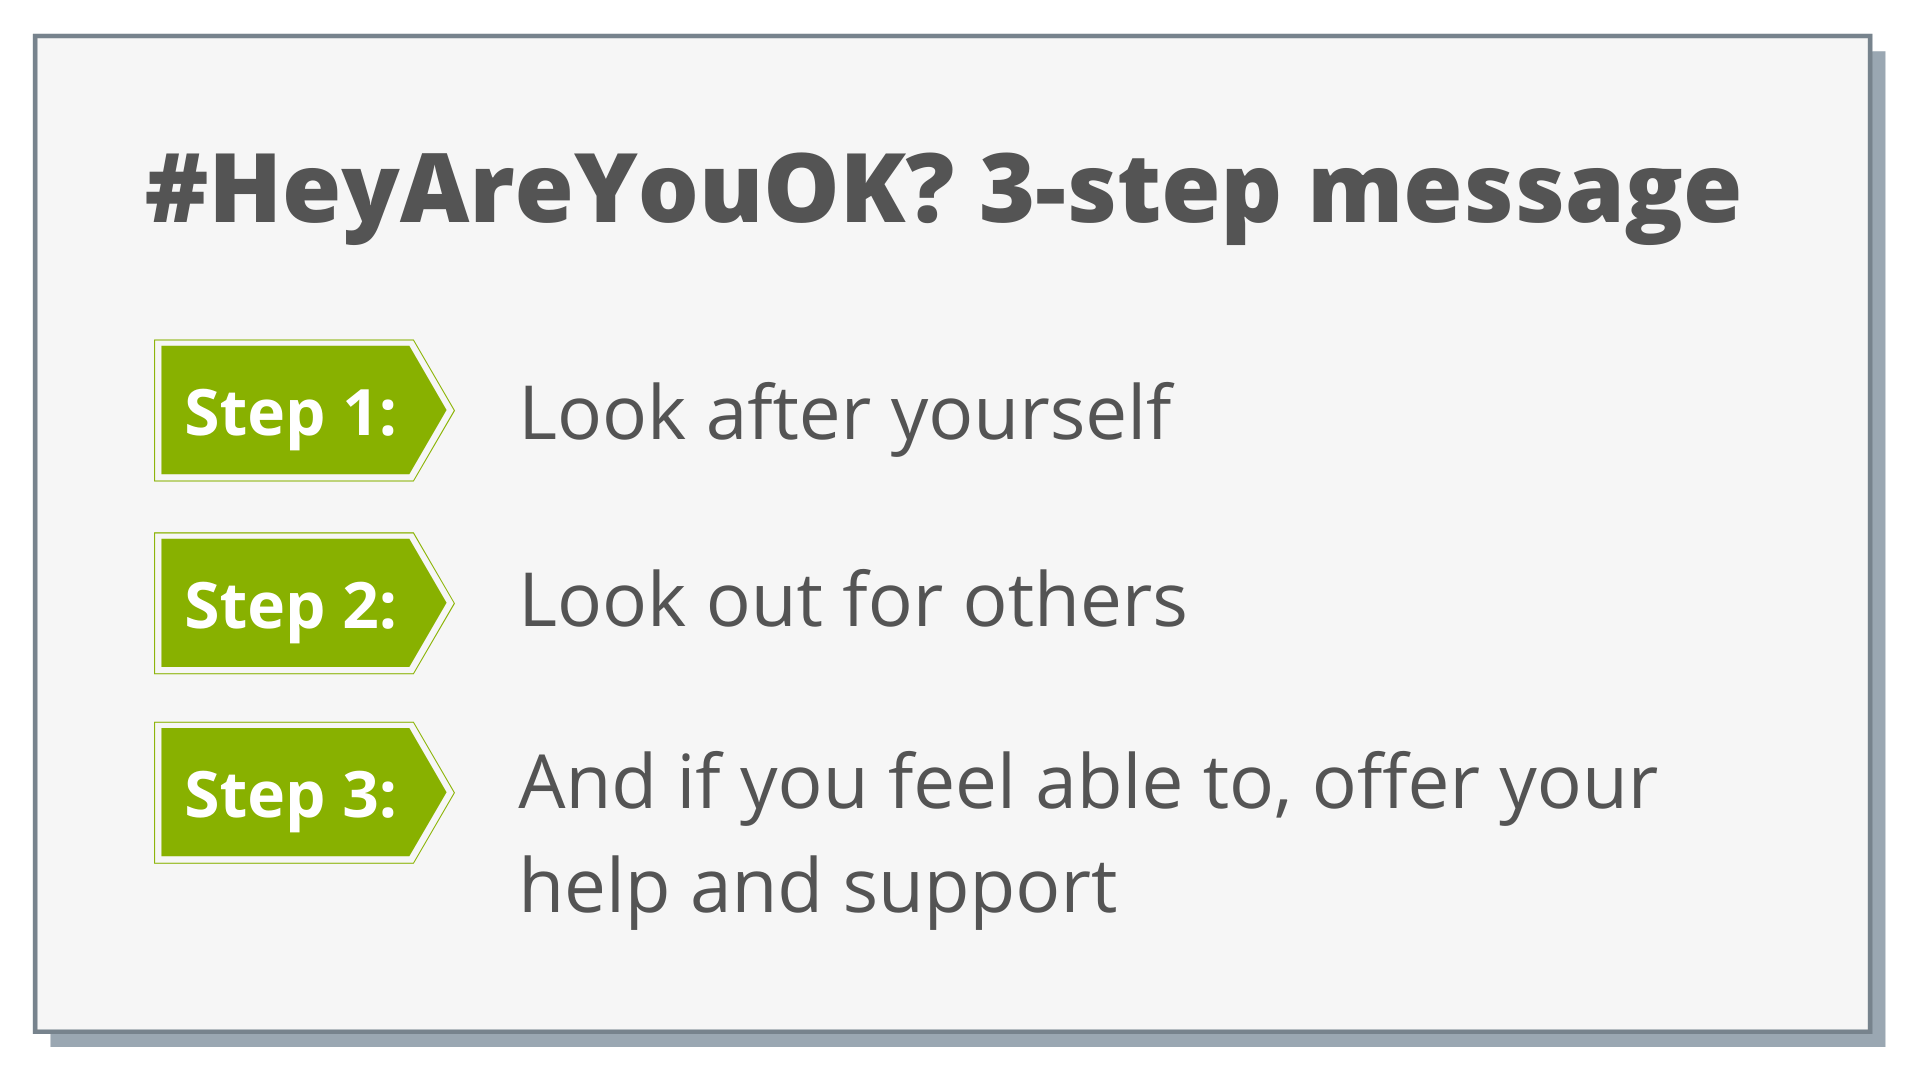 HeyAreYouOK Campaign - 3 Step Message